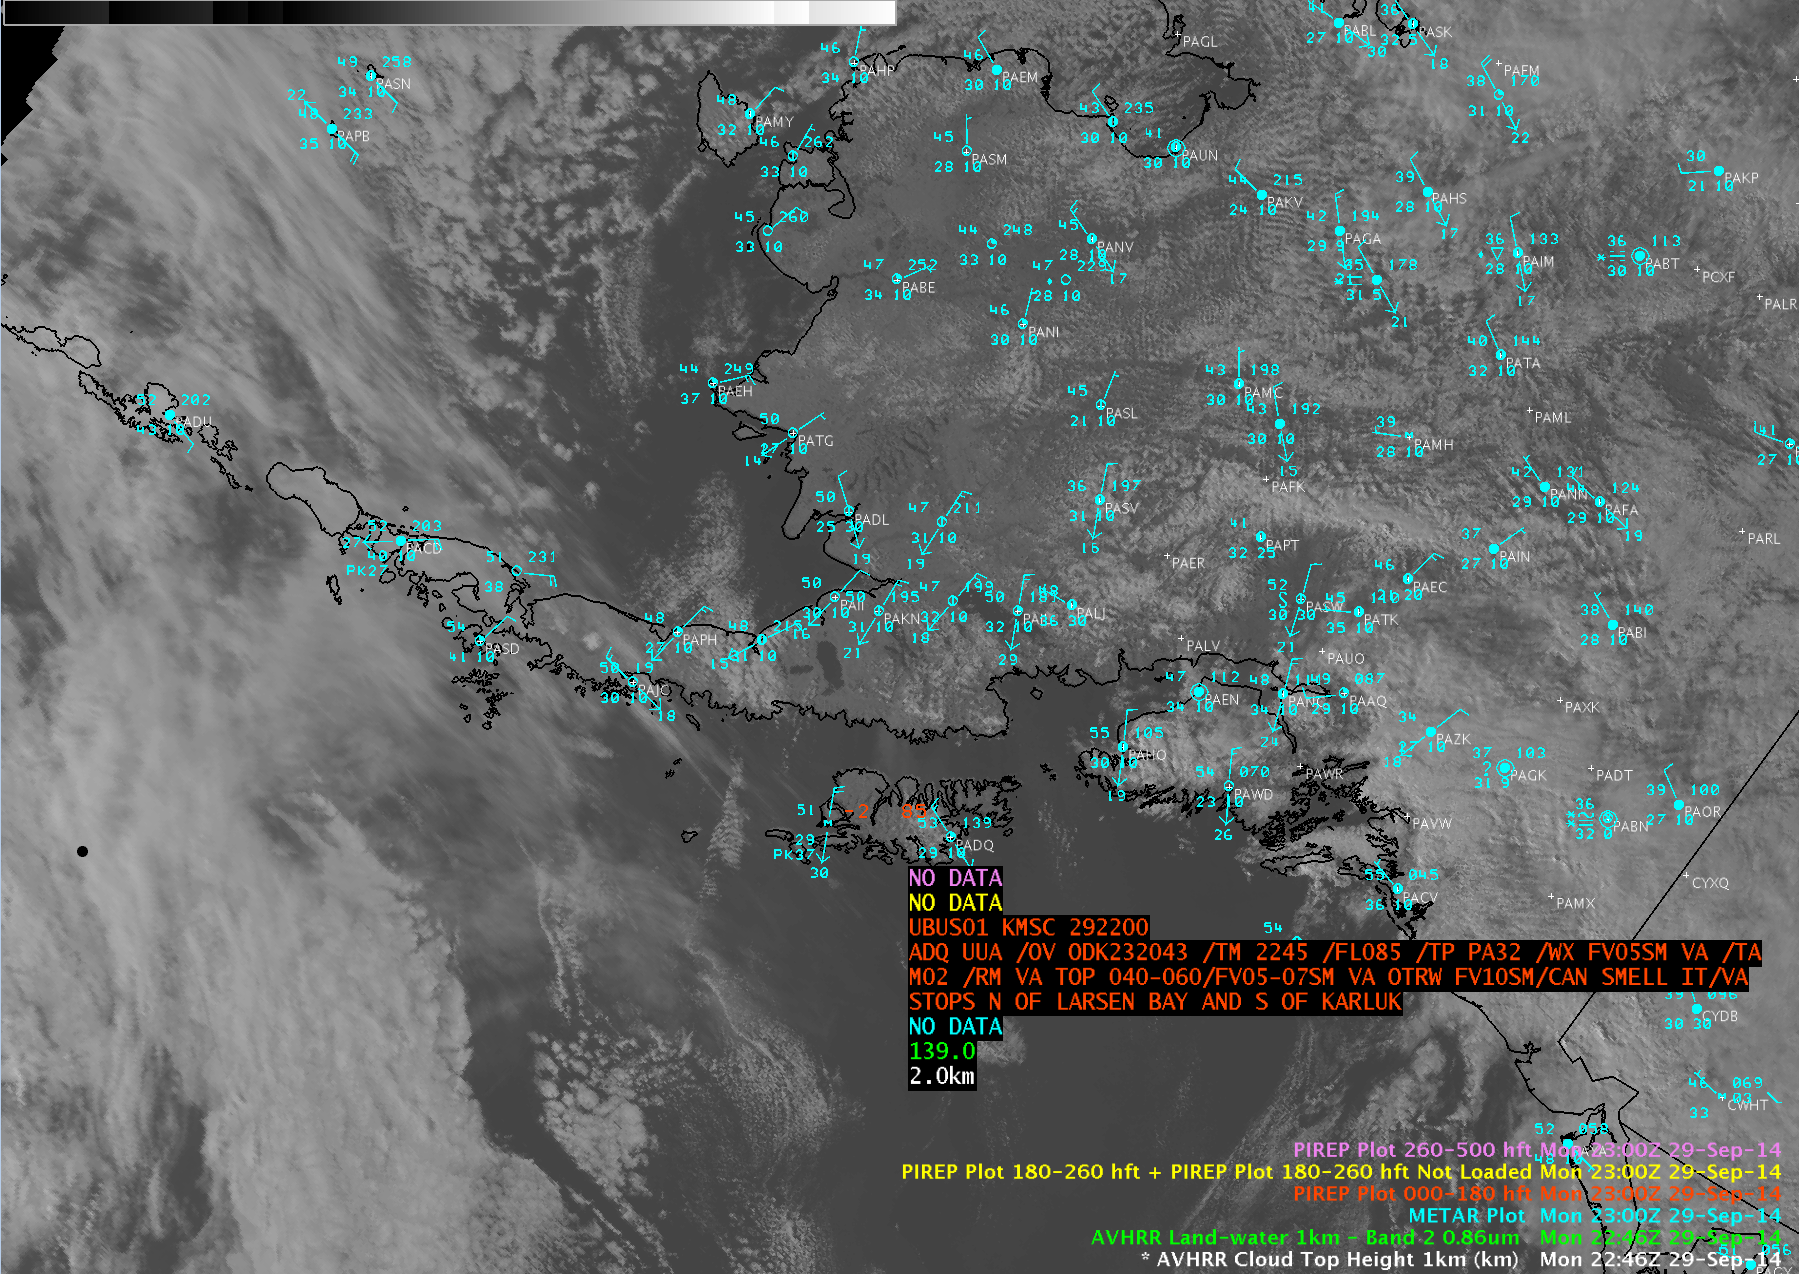 POES AVHRR 0.86 µm visible channel image, with METAR surface reports and Pilot reports (PIREPs)